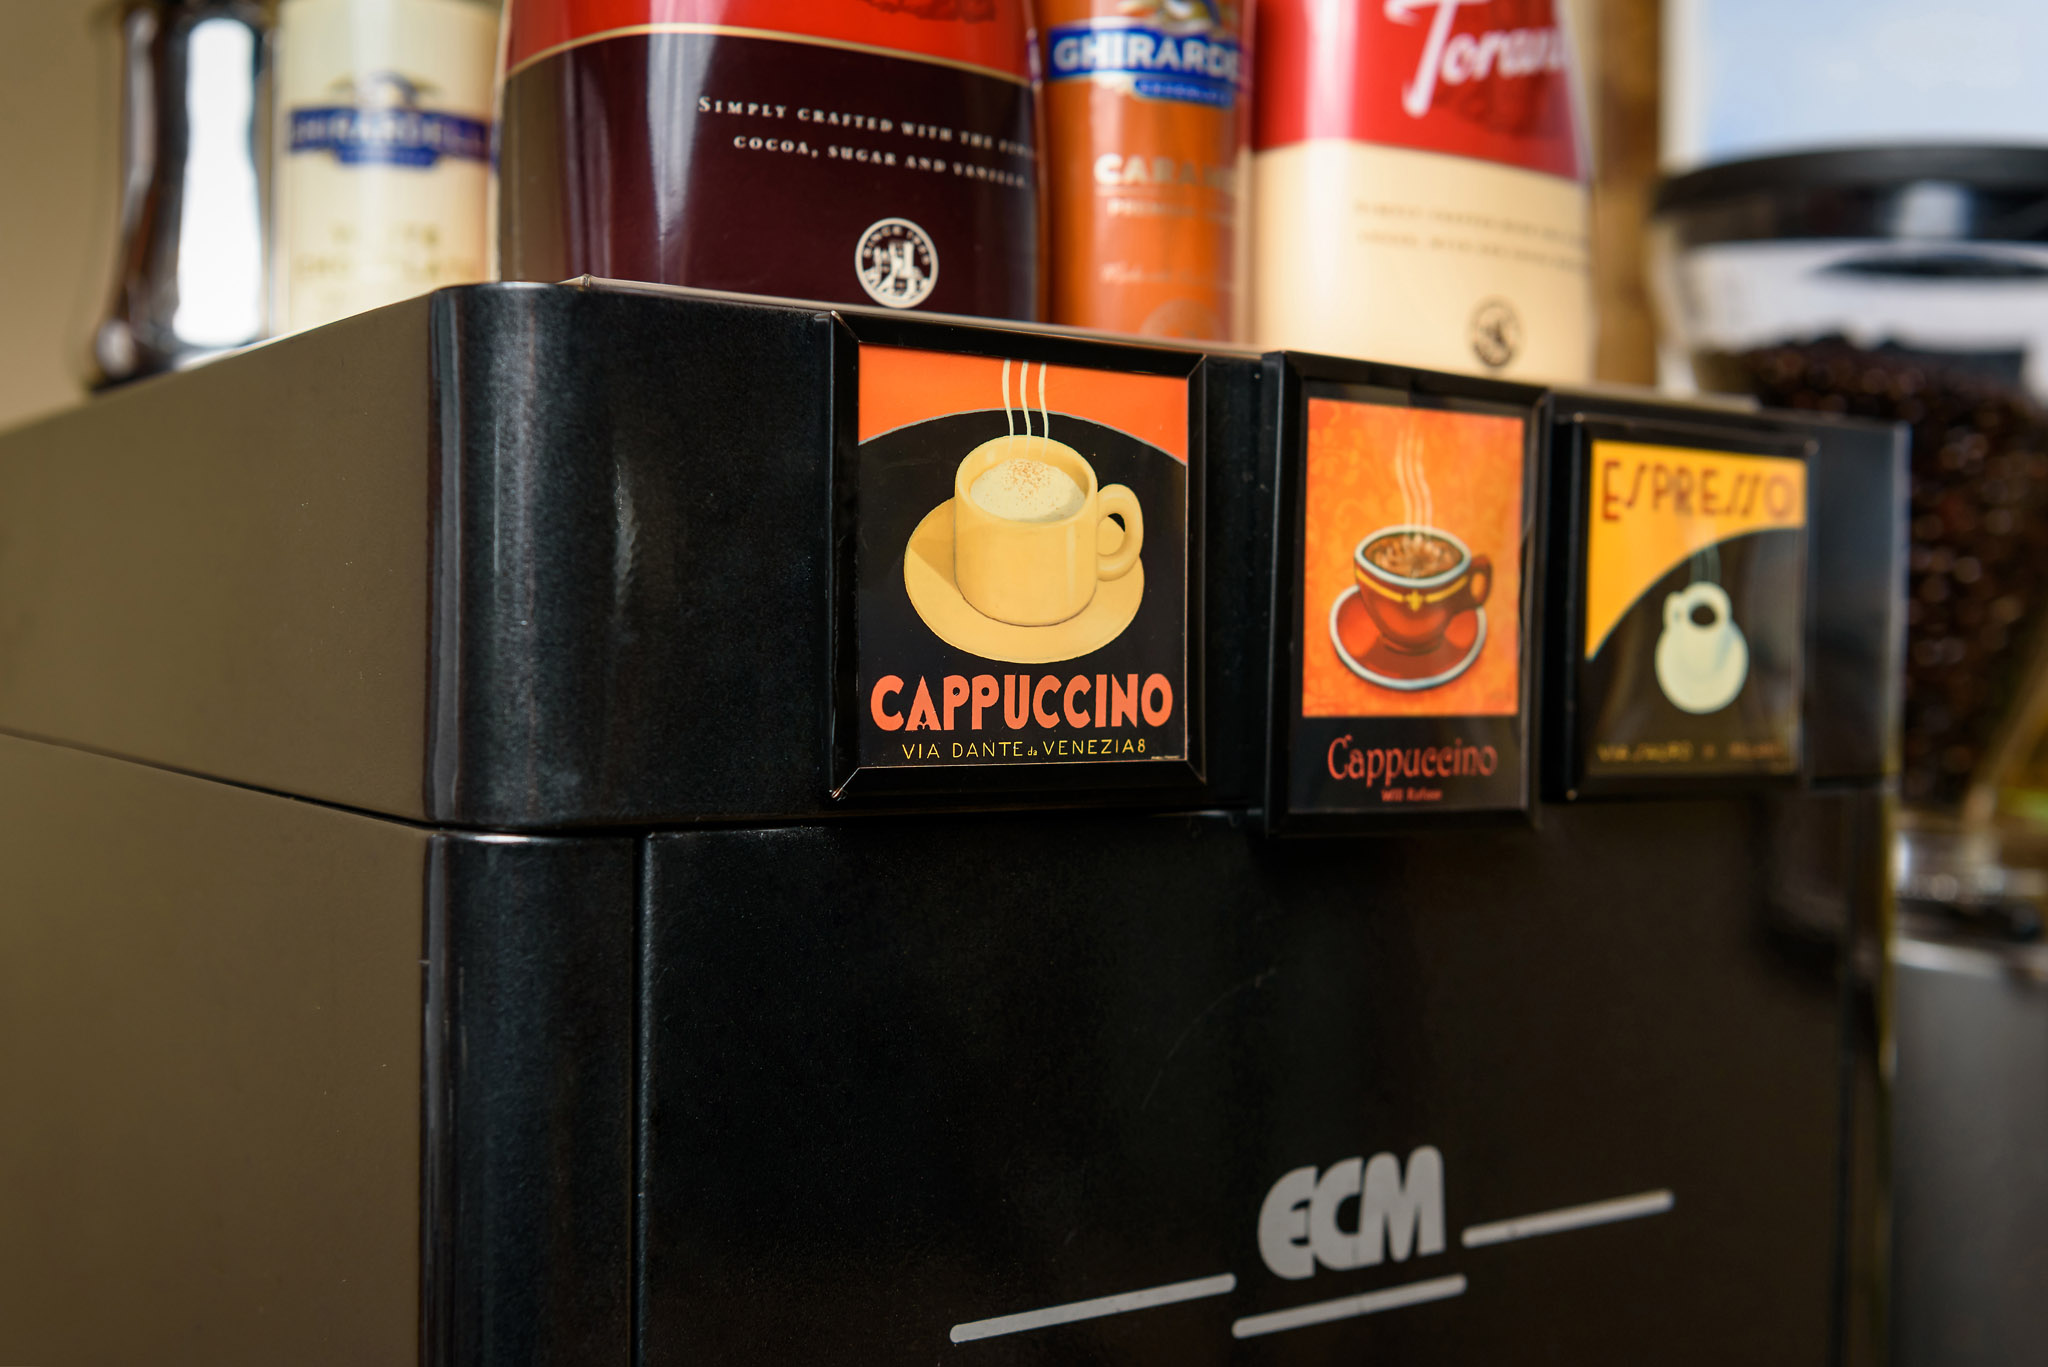 The workhorse of our business -- our one group espresso machine that is powerful but portable.